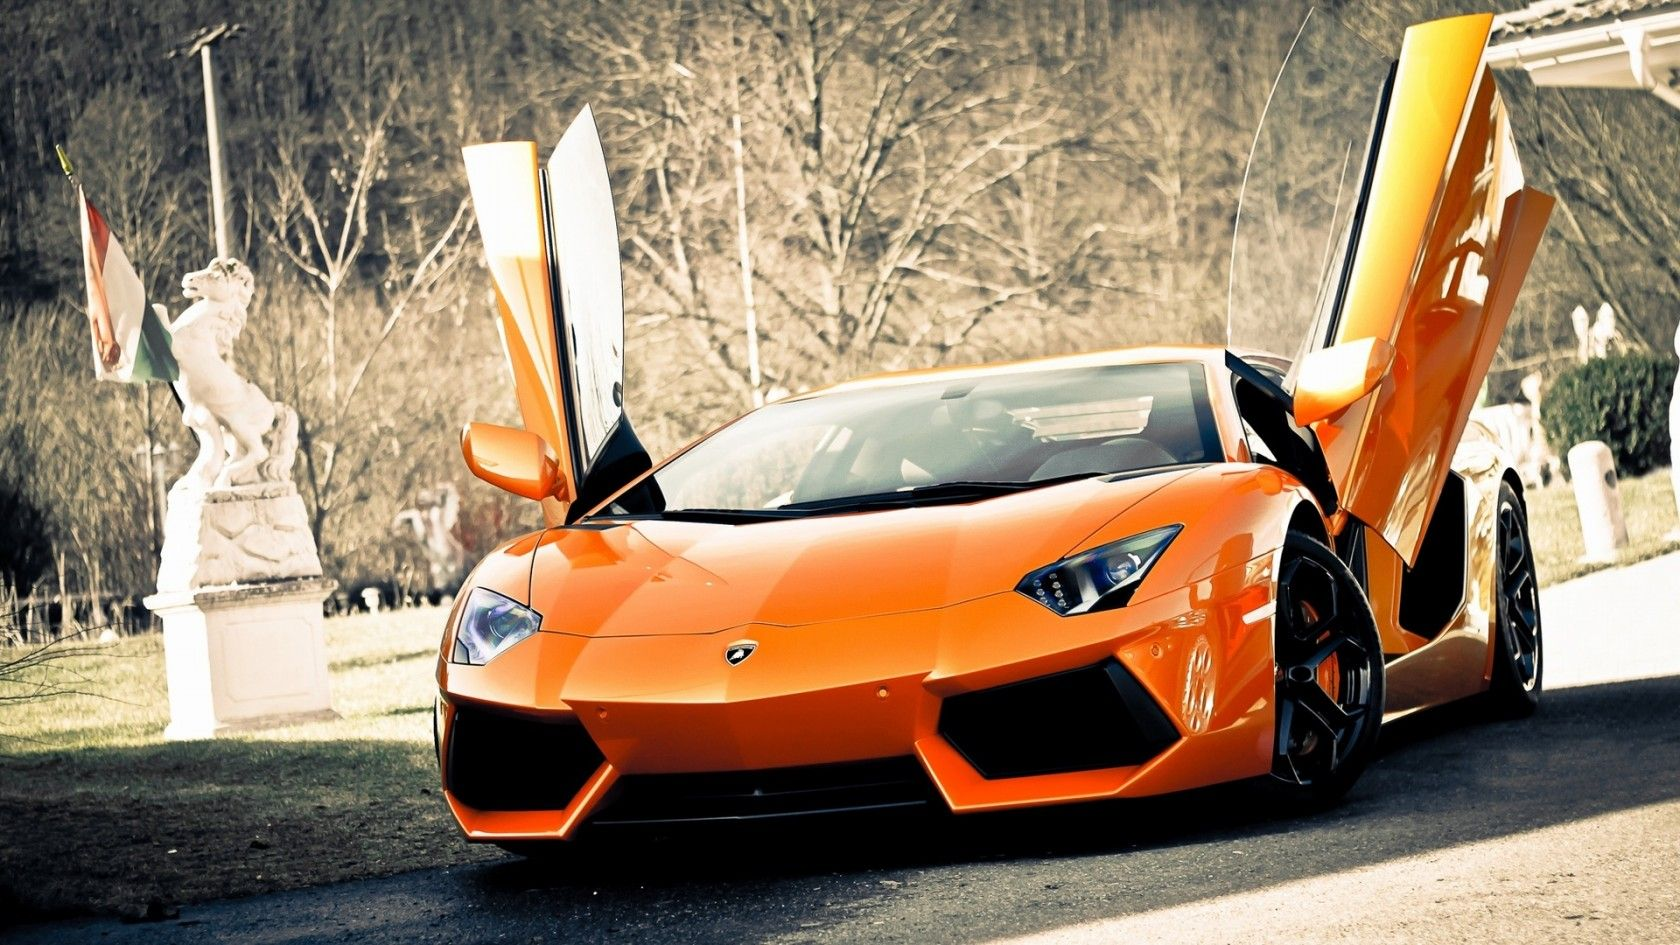 Super Cars Lamborghini Aventador Supercars Automotive